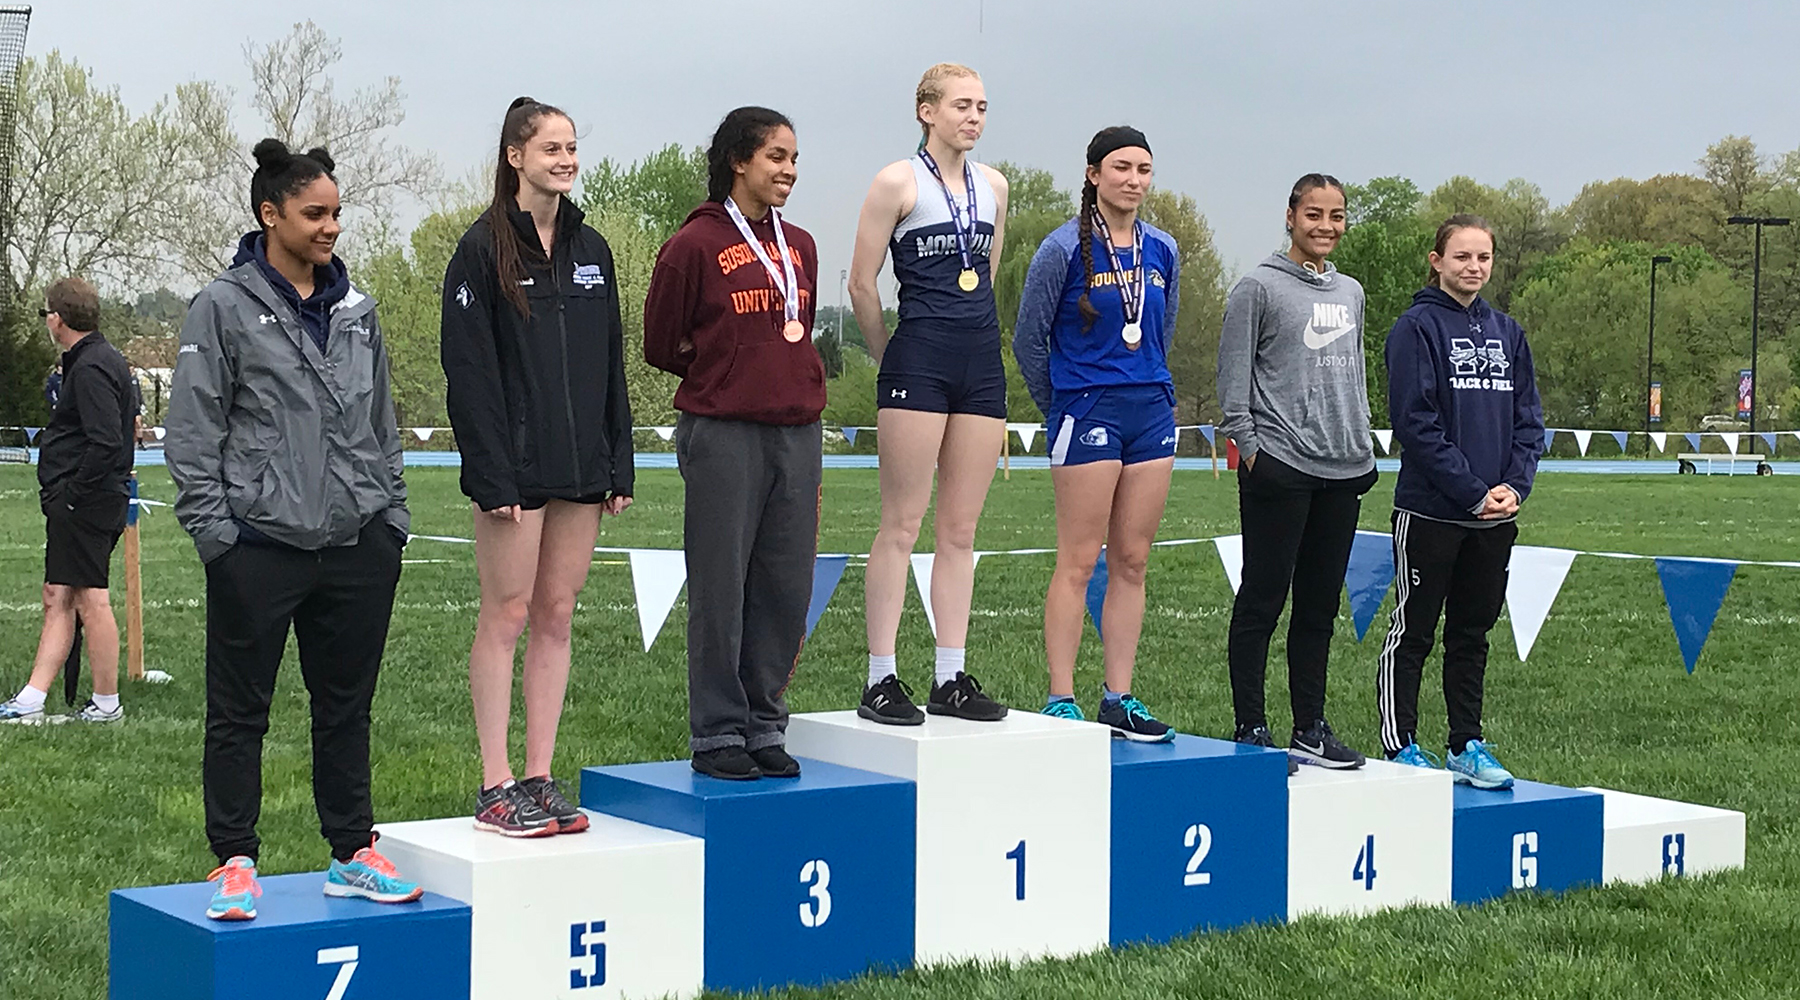 Gallina Nabs All-Landmark Conference Honors to Lead Track & Field on Final Day of Landmark Championships